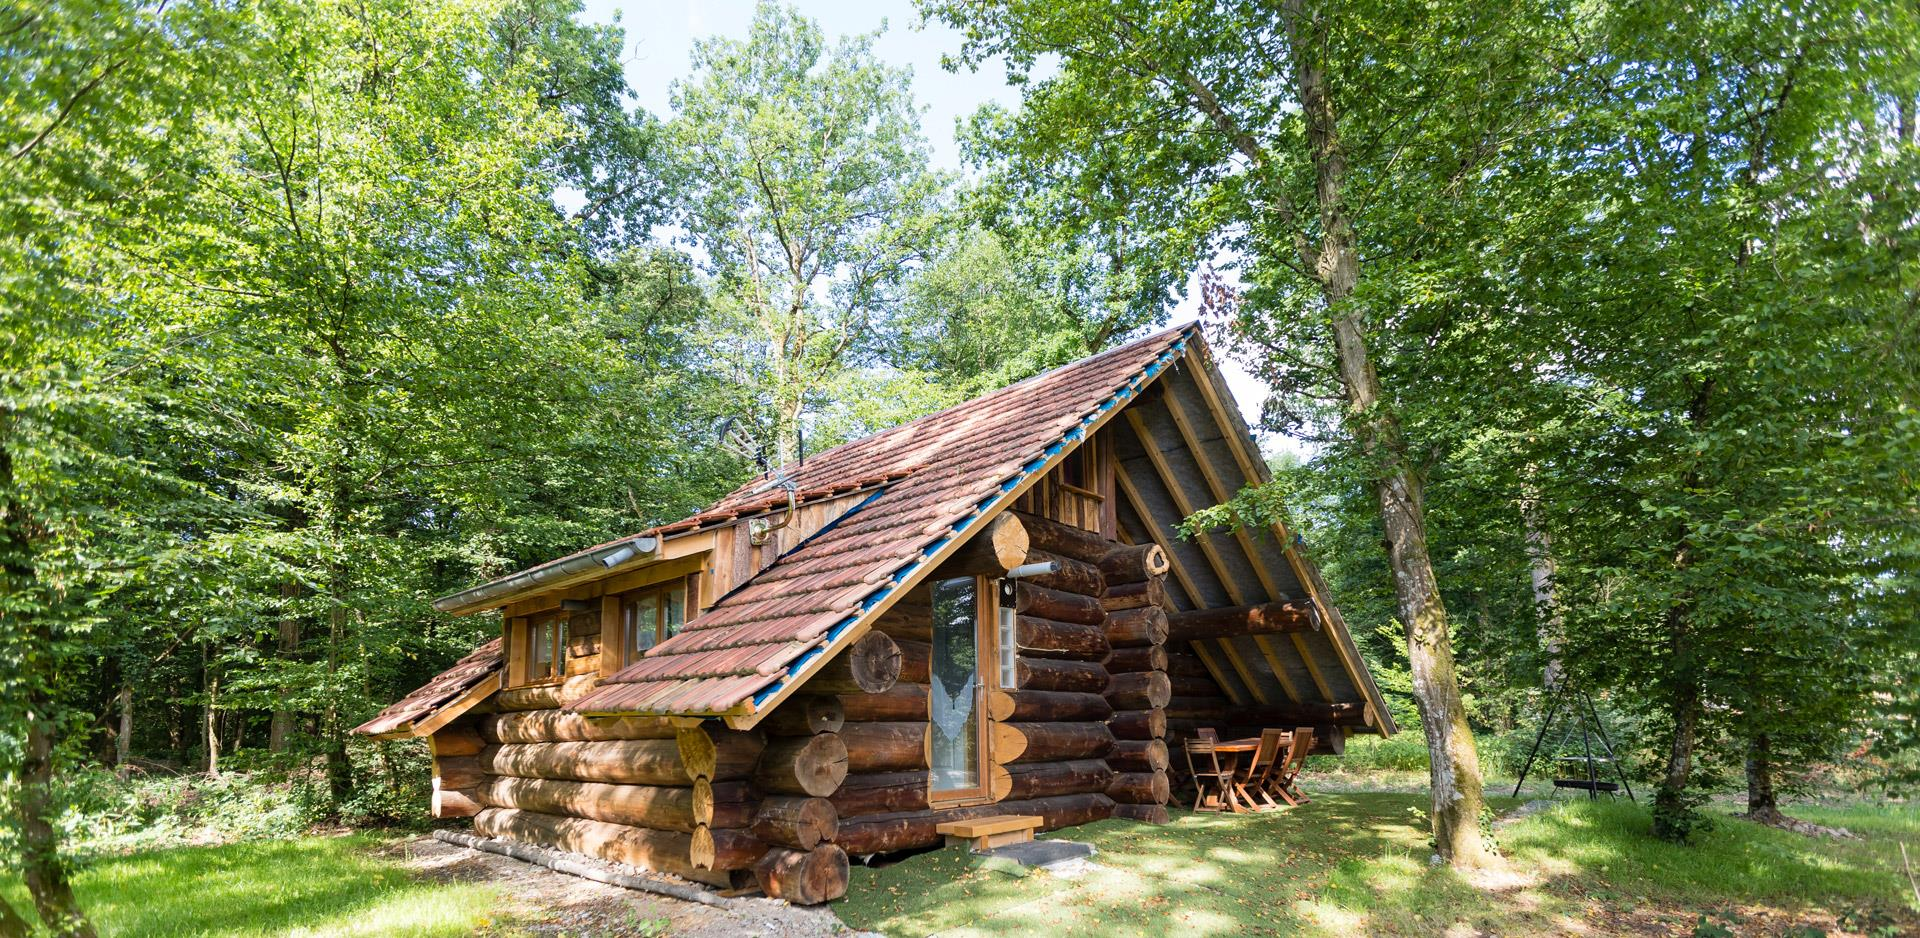 View of the Log Cabin, holiday home to rent at the Campsite Les Castors in Alsace